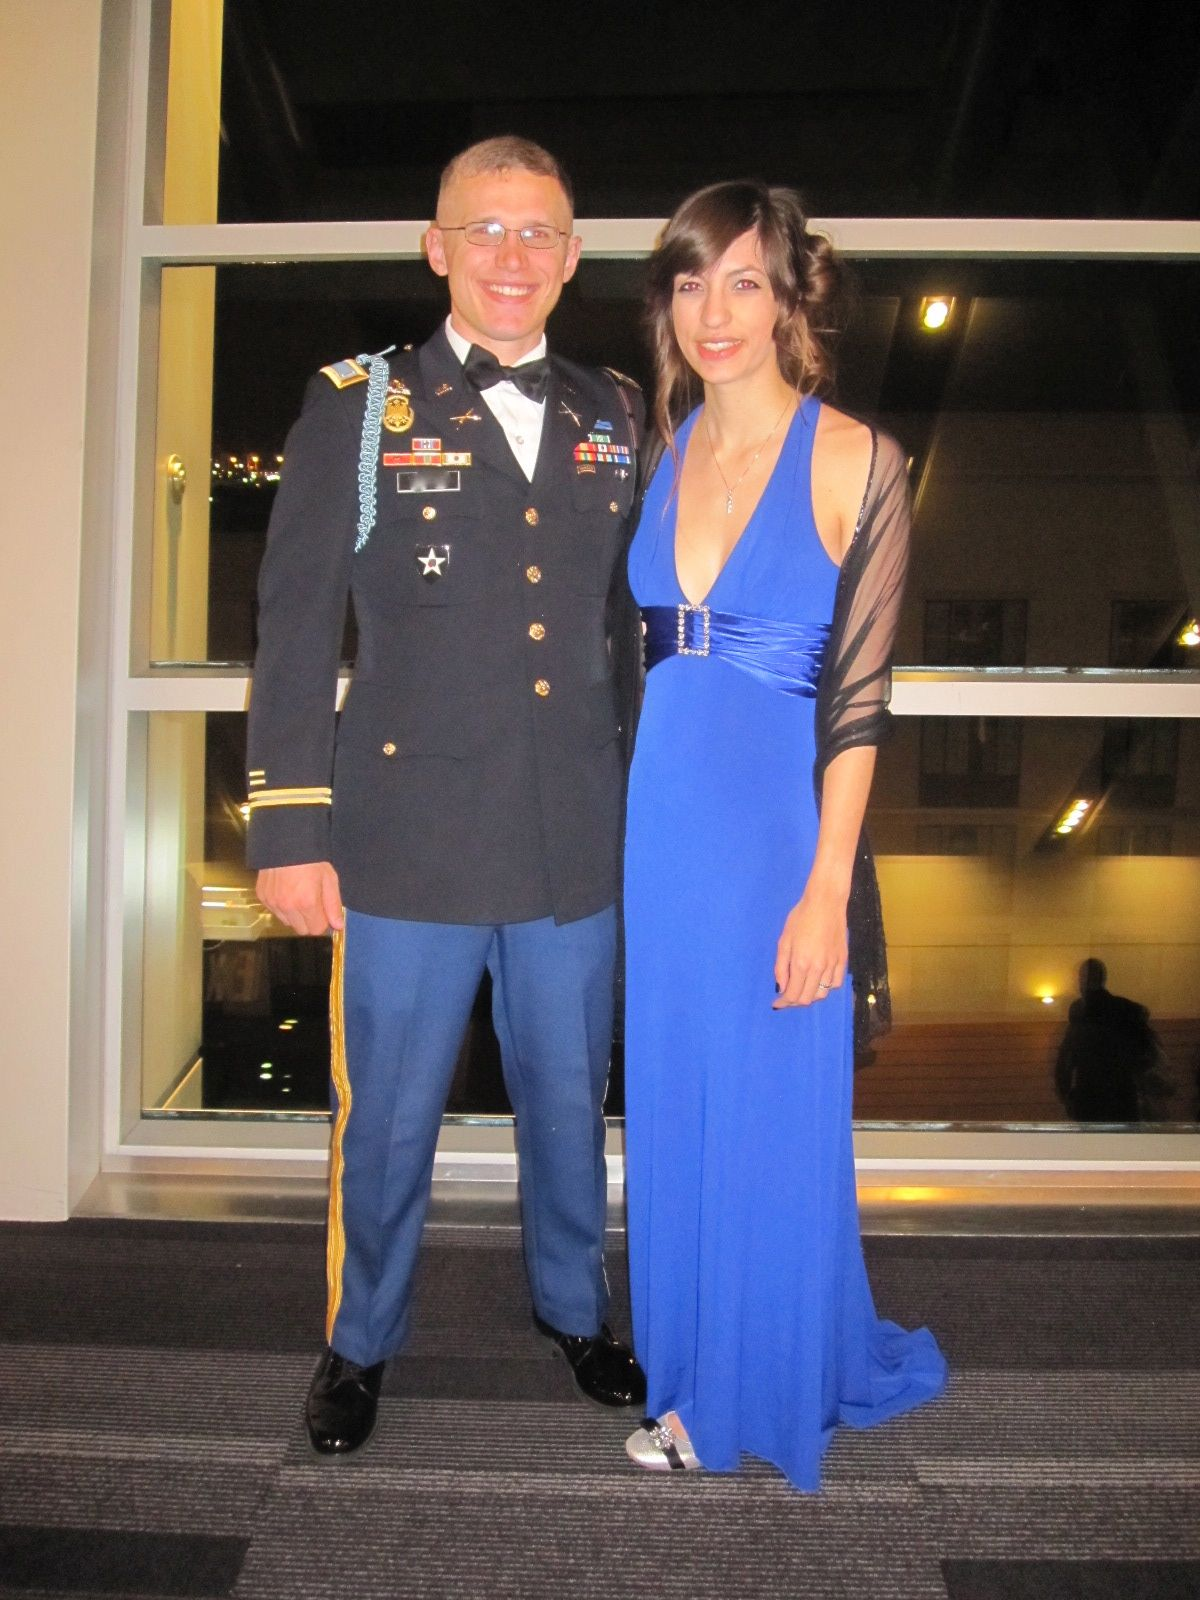 My First Military Ball